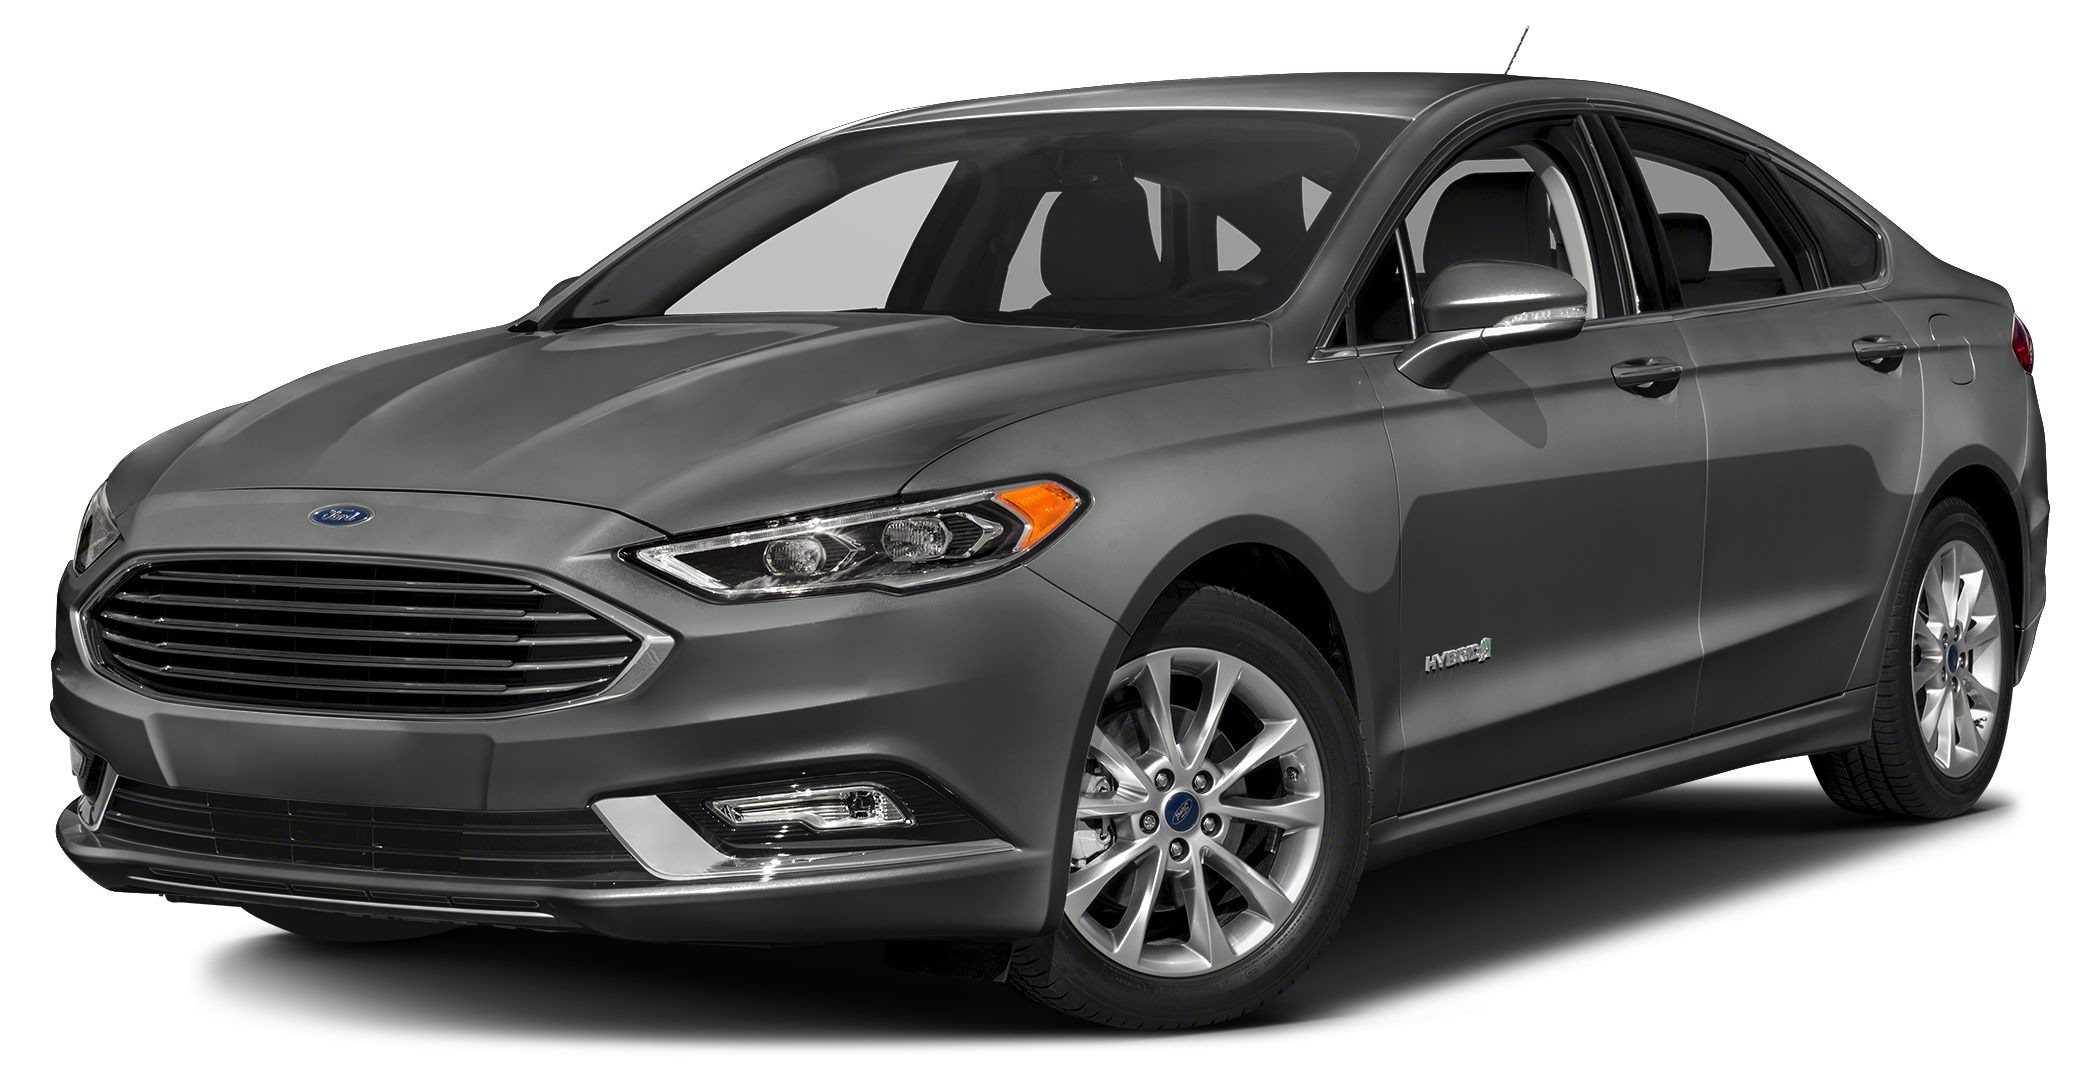 2018 Ford Fusion Hybrid SE 2018 Ford Fusion Hybrid SE 4143 HighwayCity MPG Price includes 125